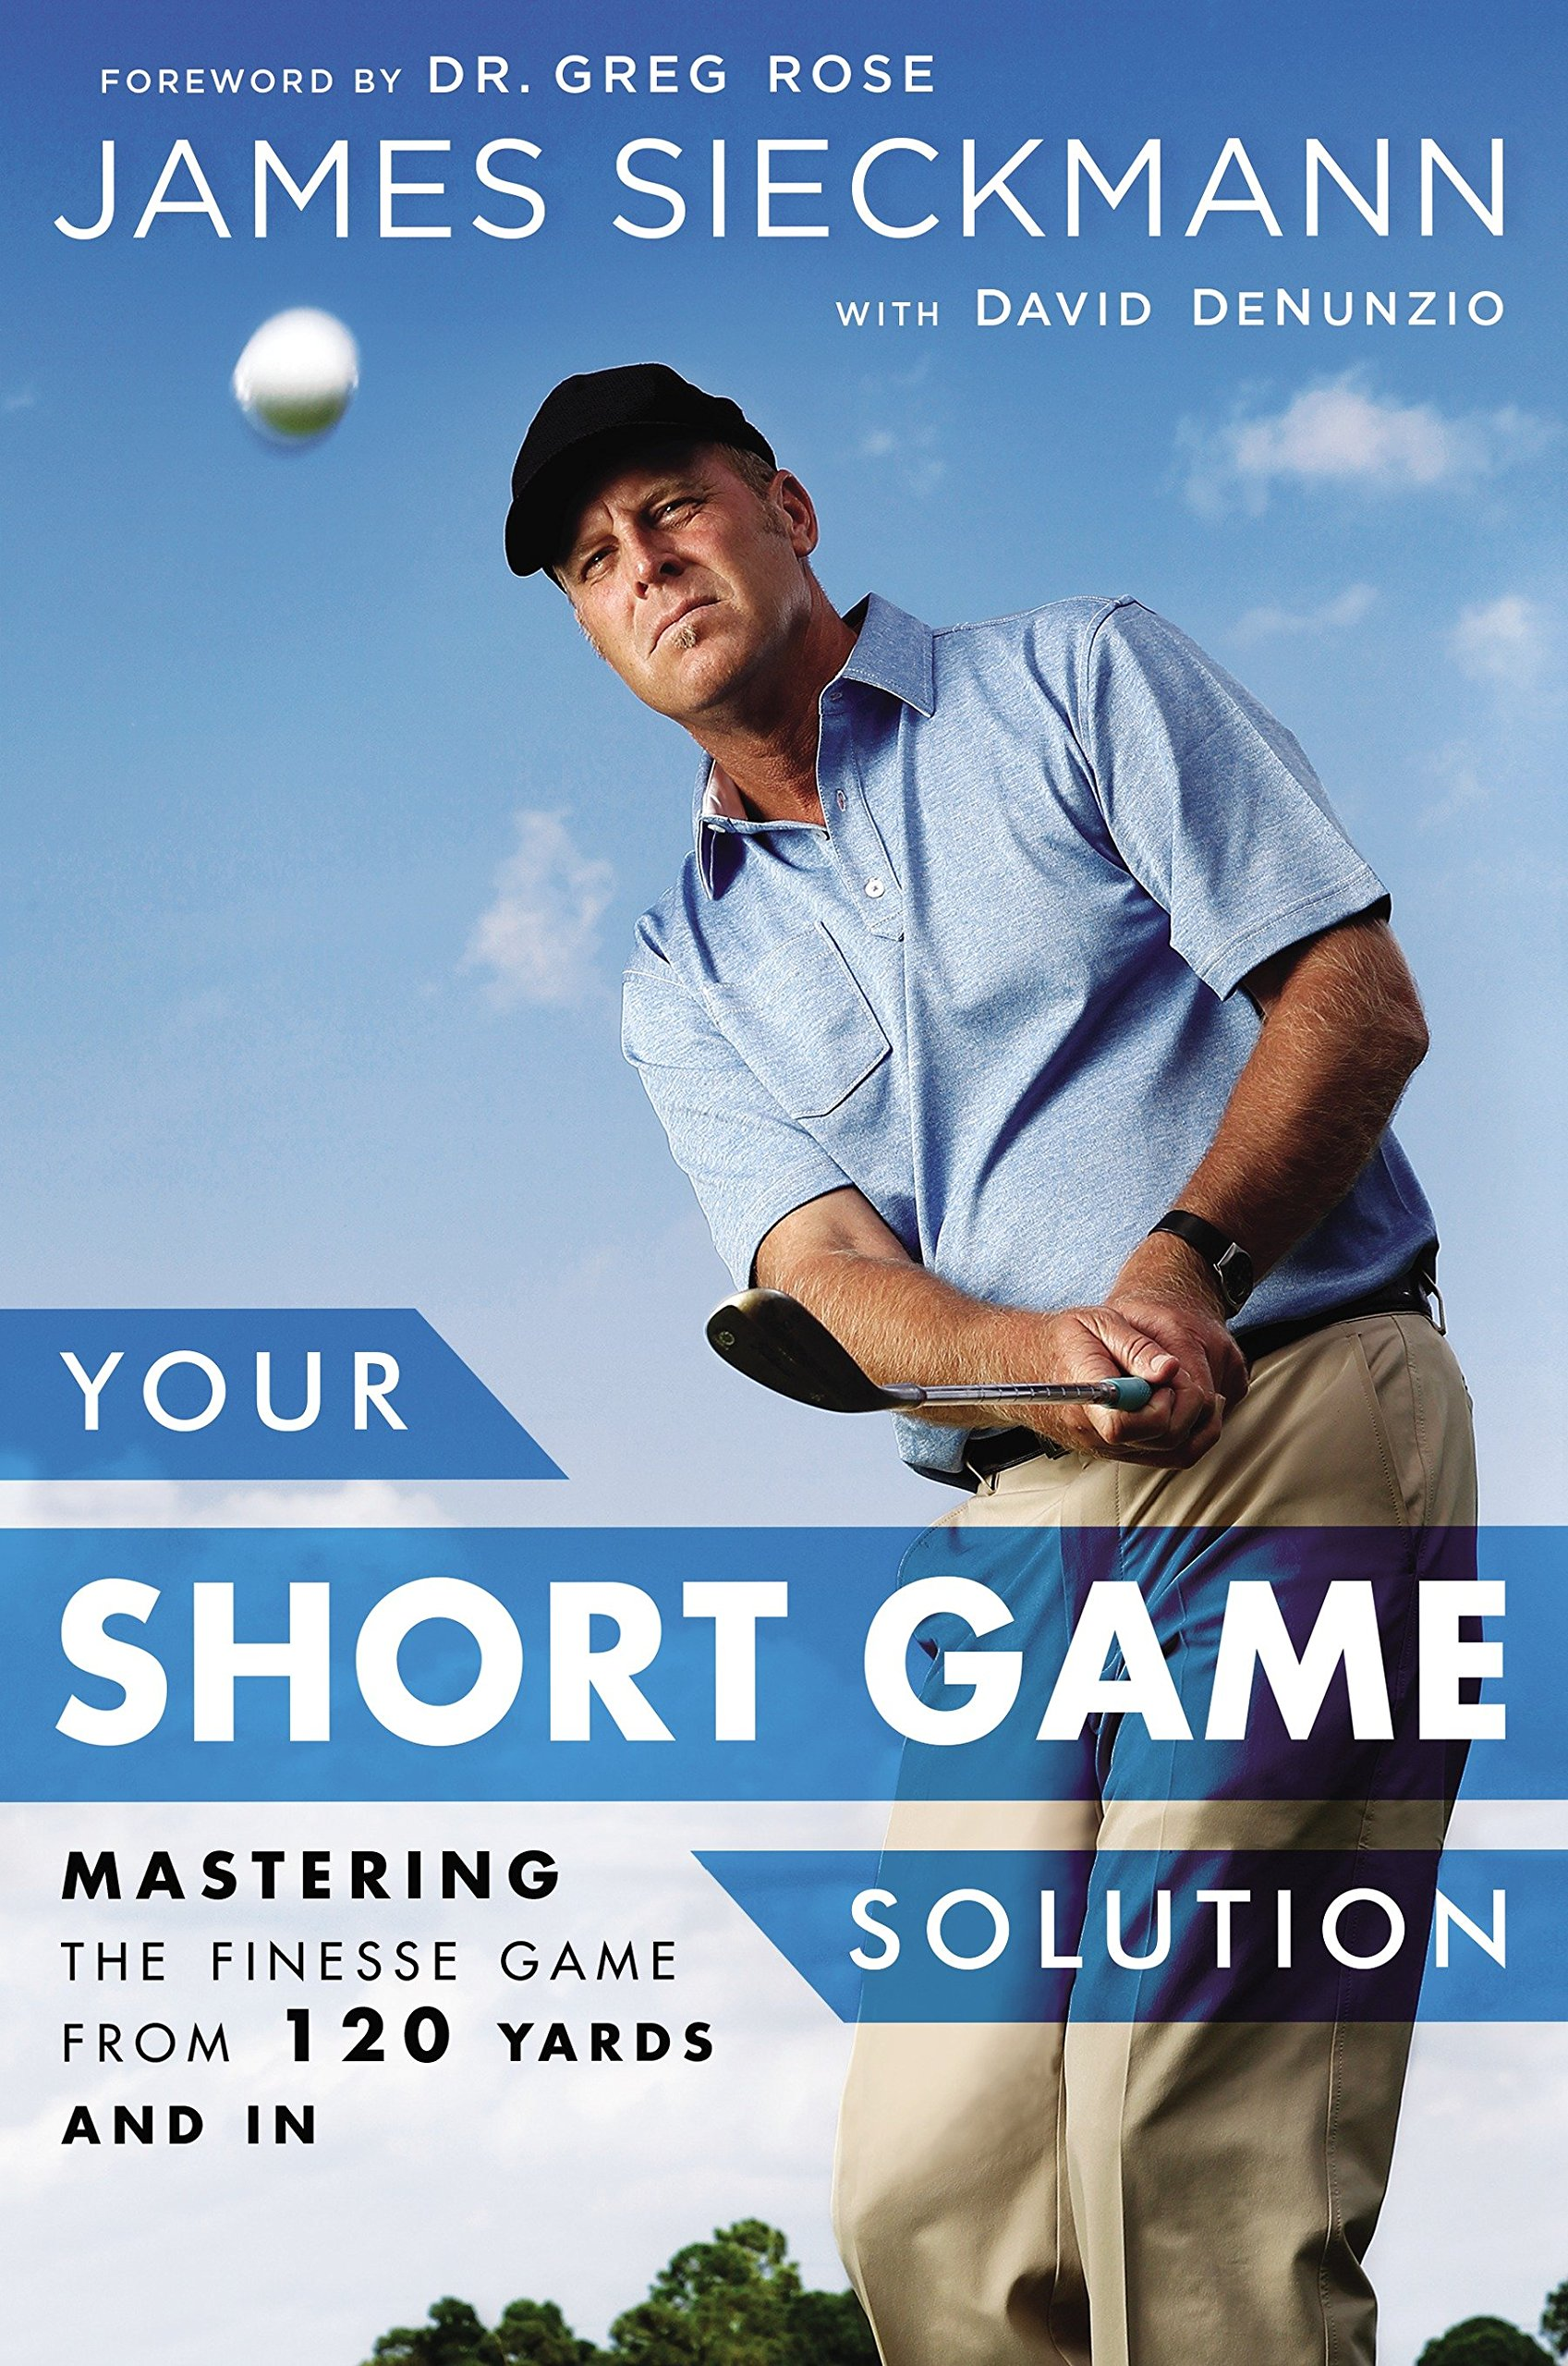 Your Short Game Solution: Mastering the Finesse Game from 120 Yards and In:  James Sieckmann, David Denunzio, Greg Rose: 9781592409068: Amazon.com: Books